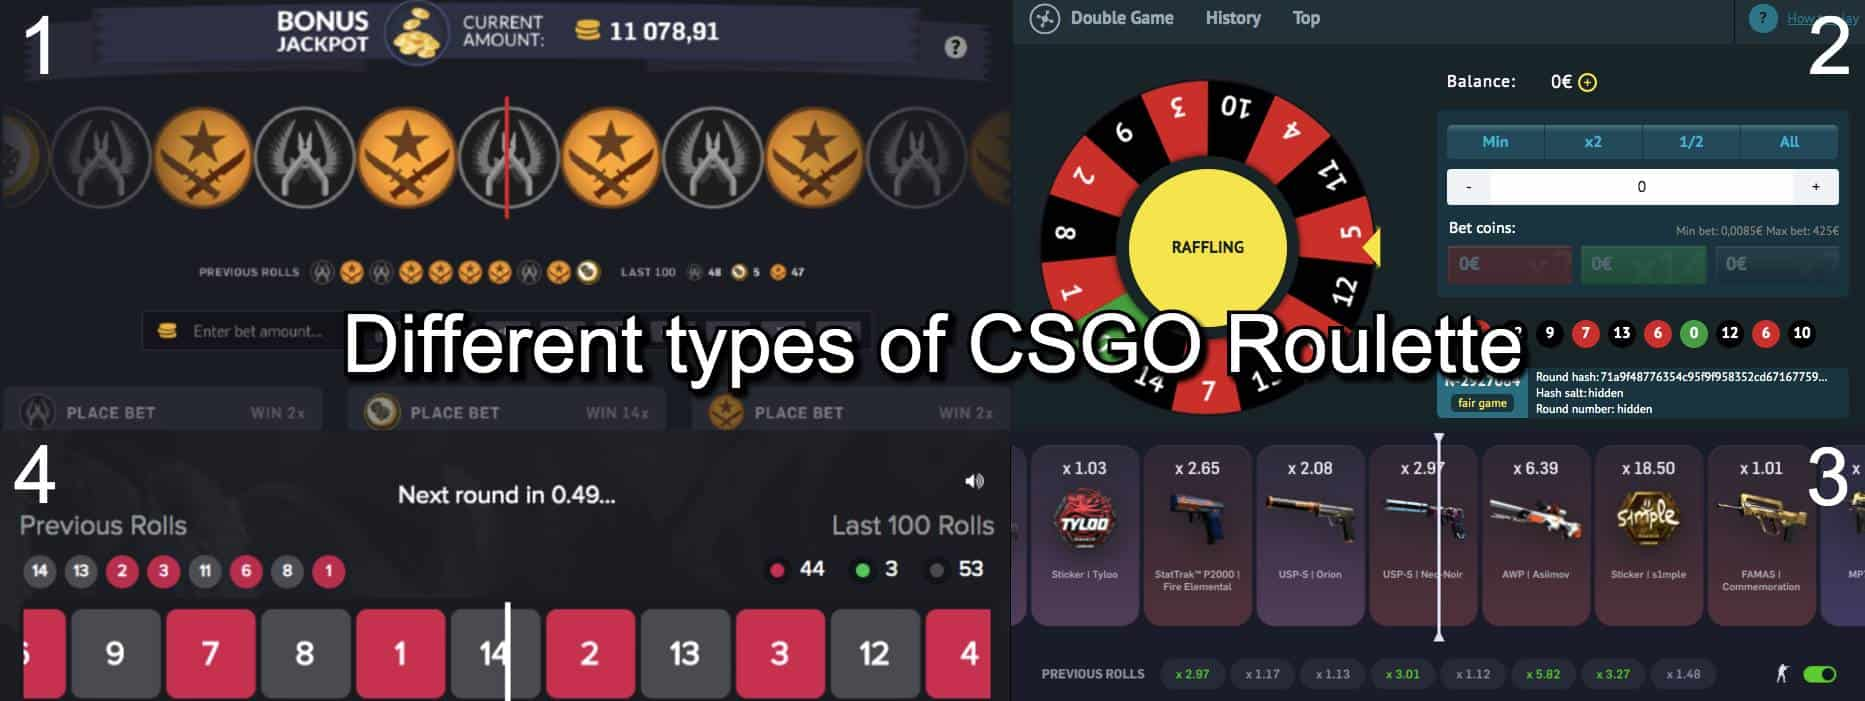 Different types of CSGO Roulette sites